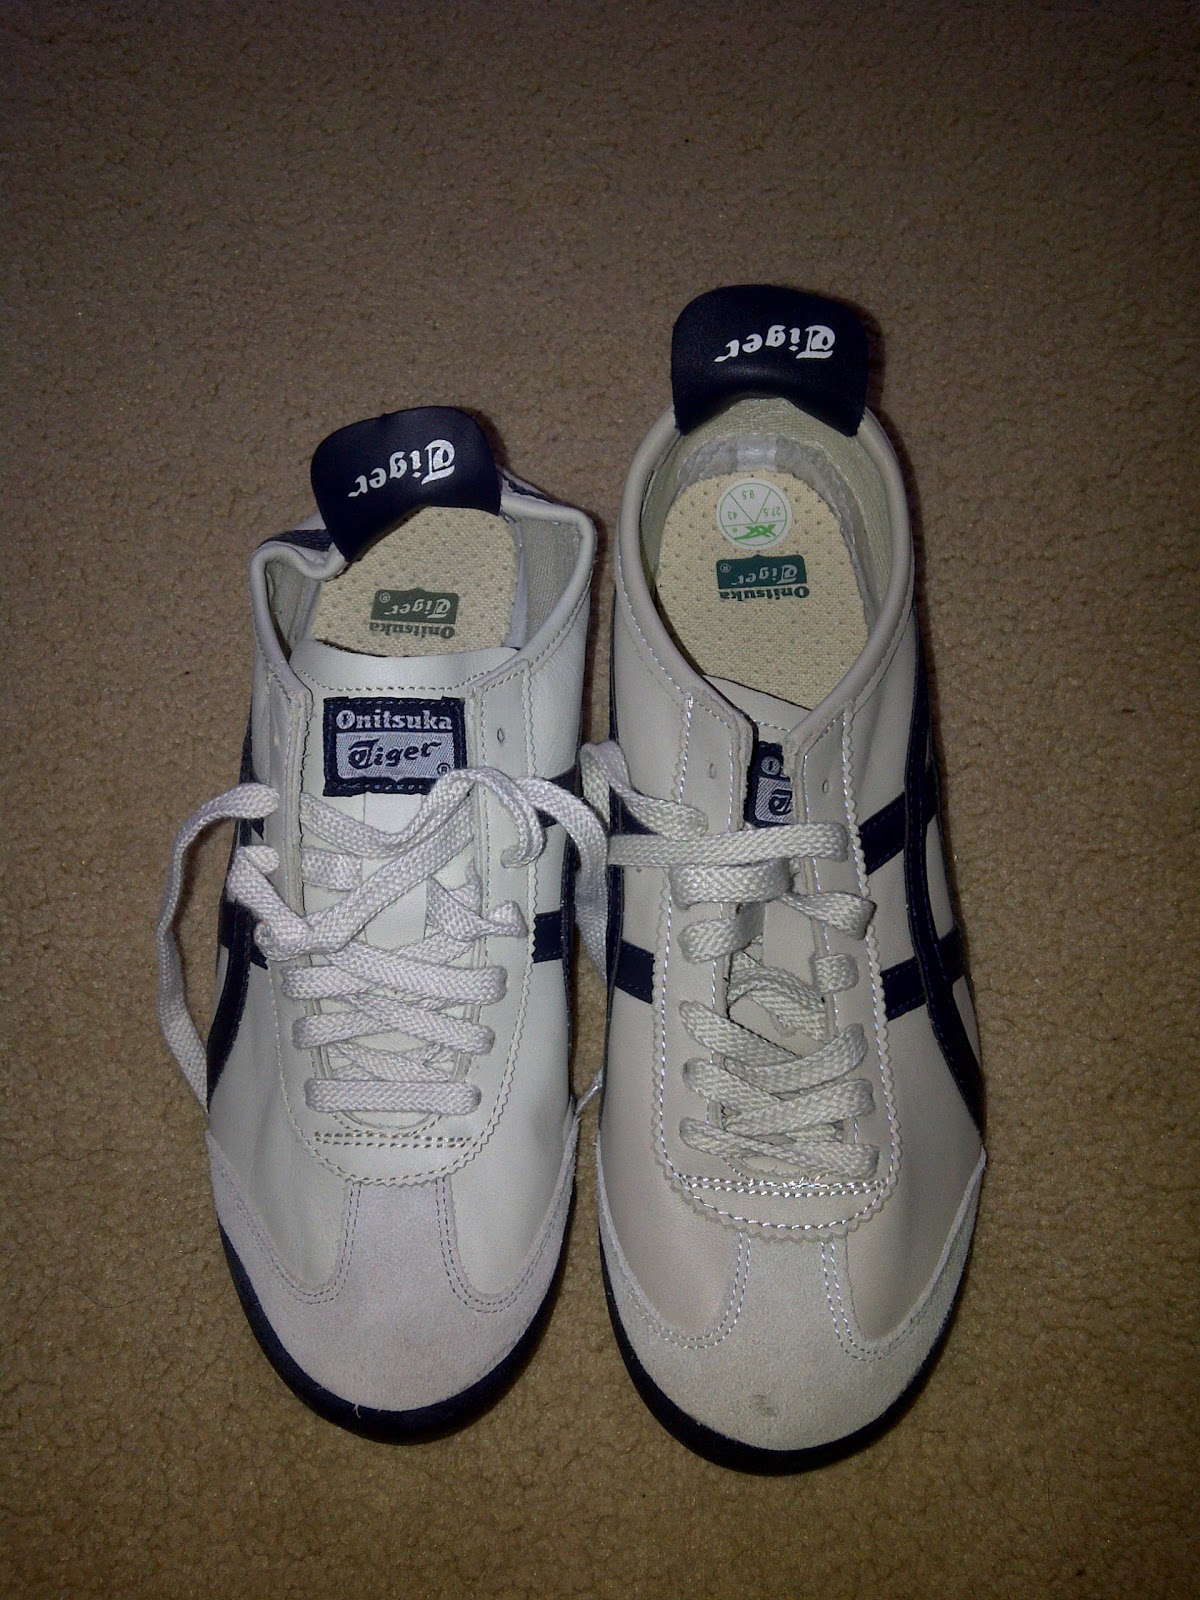 reputable site f08b1 f116d FOOT WEAR GALLERY: HOW TO SPOT FAKE ONITSUKA TIGER